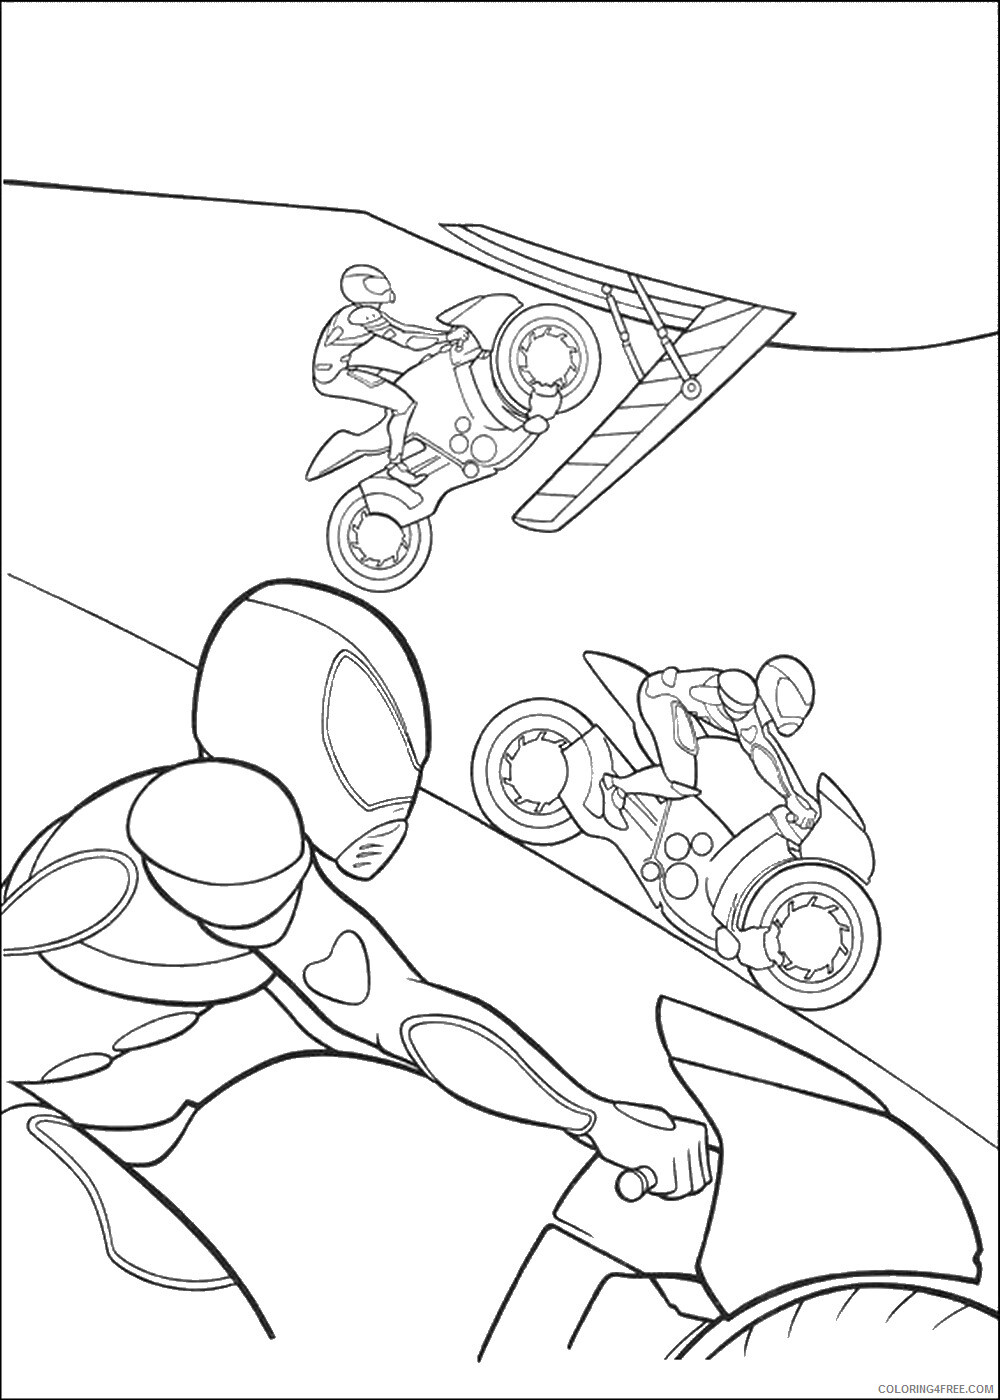 Bolt Coloring Pages TV Film bolt_cl_13 Printable 2020 01174 Coloring4free